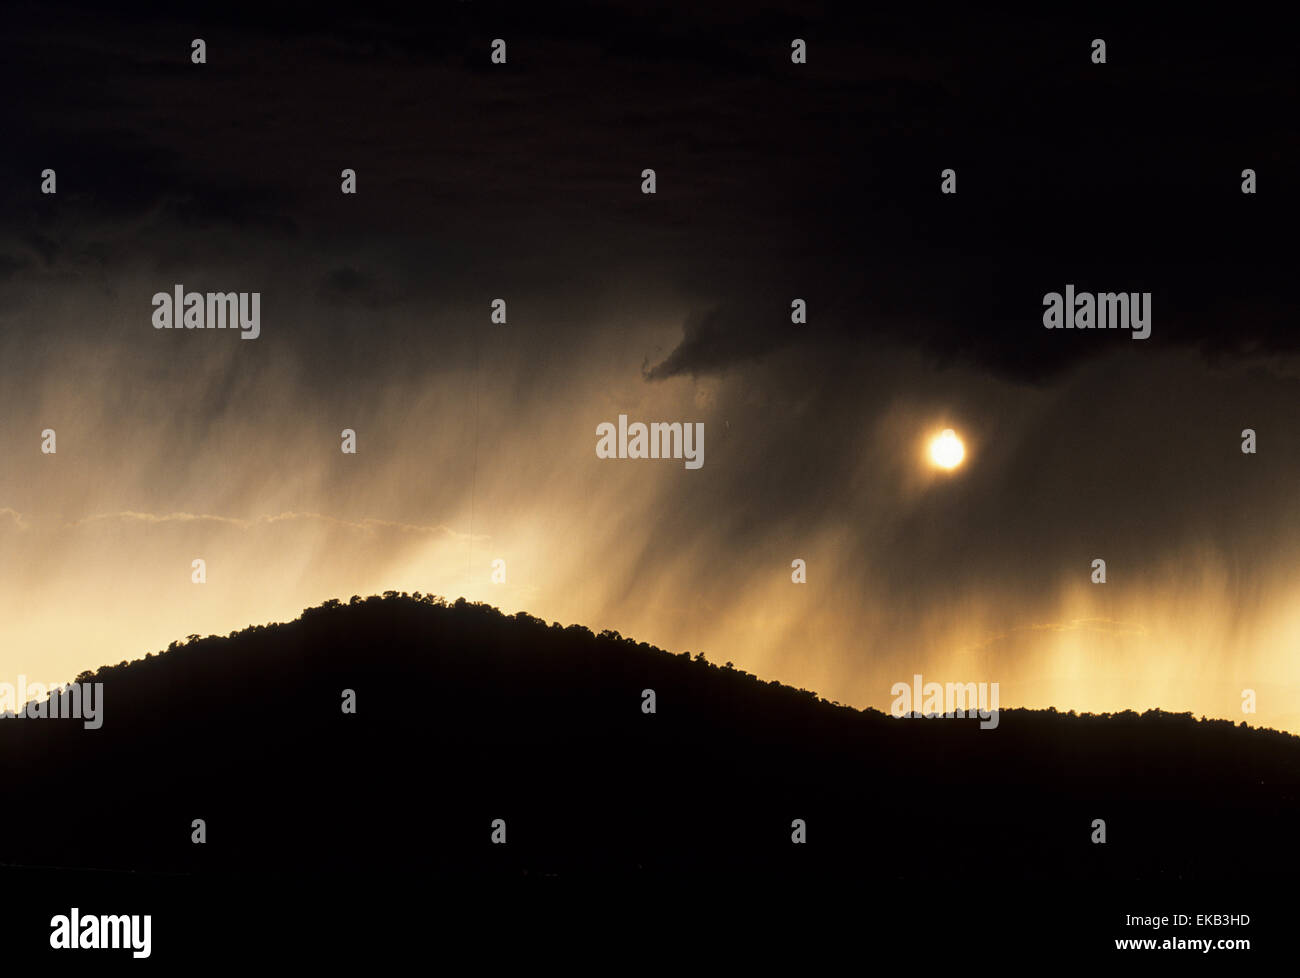 A summer rainstorm is a passing  event in northern New Mexico, where the sun peeks out from below the clouds. - Stock Image